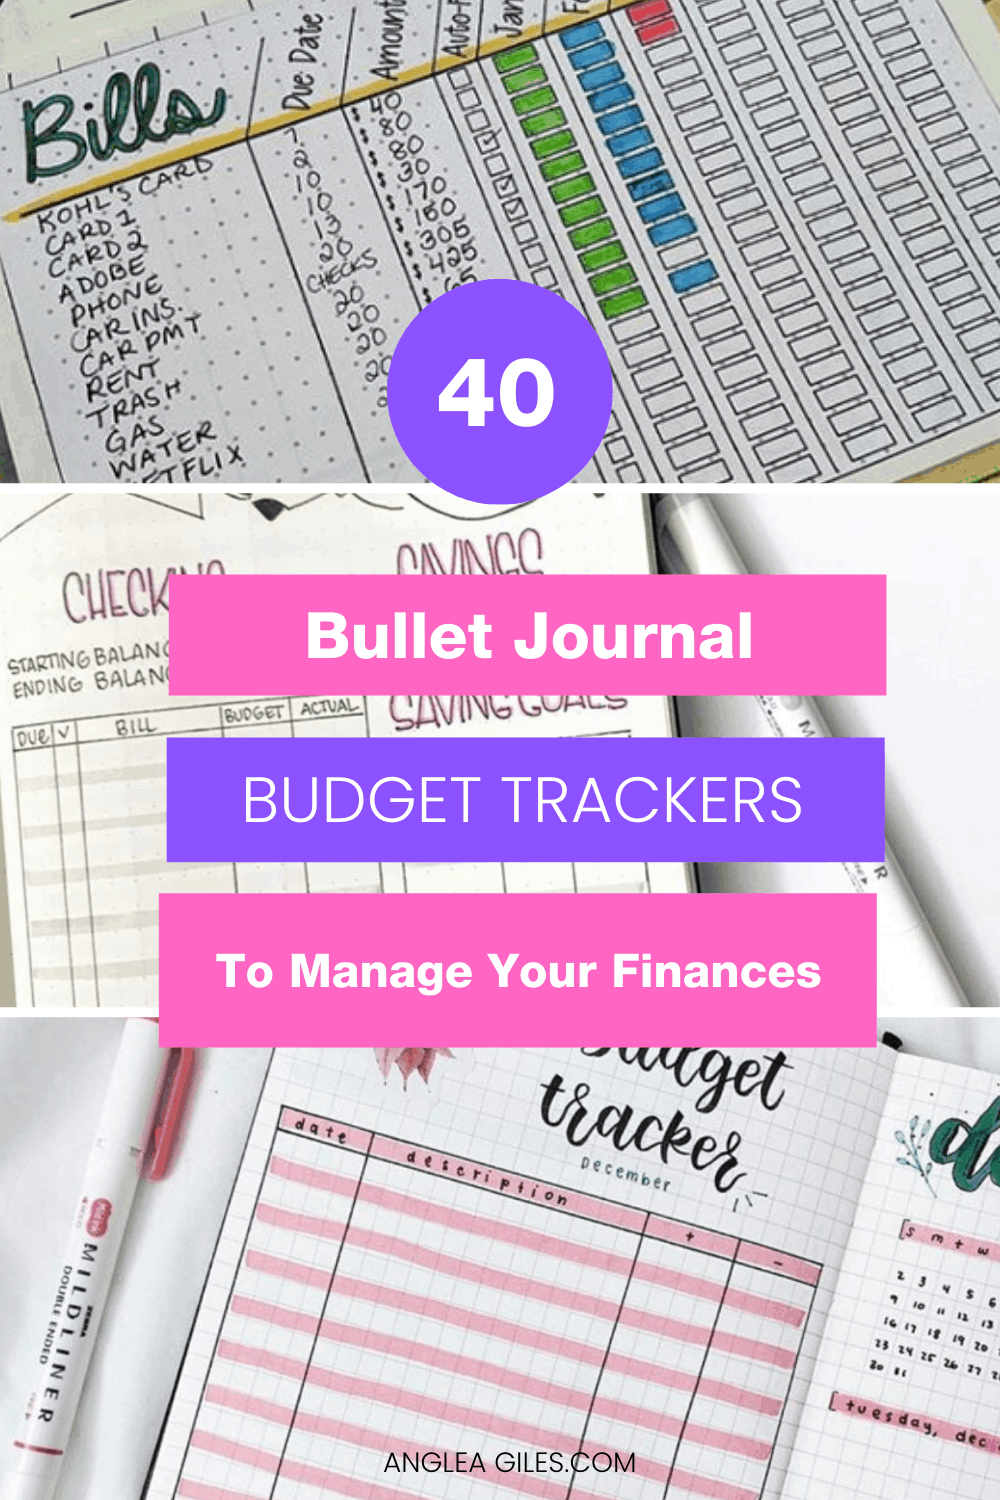 Make managing your money fun and way easier with Bullet Journal Budget Trackers!  These bullet journal budget ideas, pages and spreads will help you manage your finances with creativity and flair.  They are perfect for moms of young children, university & college students or bujo addicts who like trying new bullet journal hacks! 